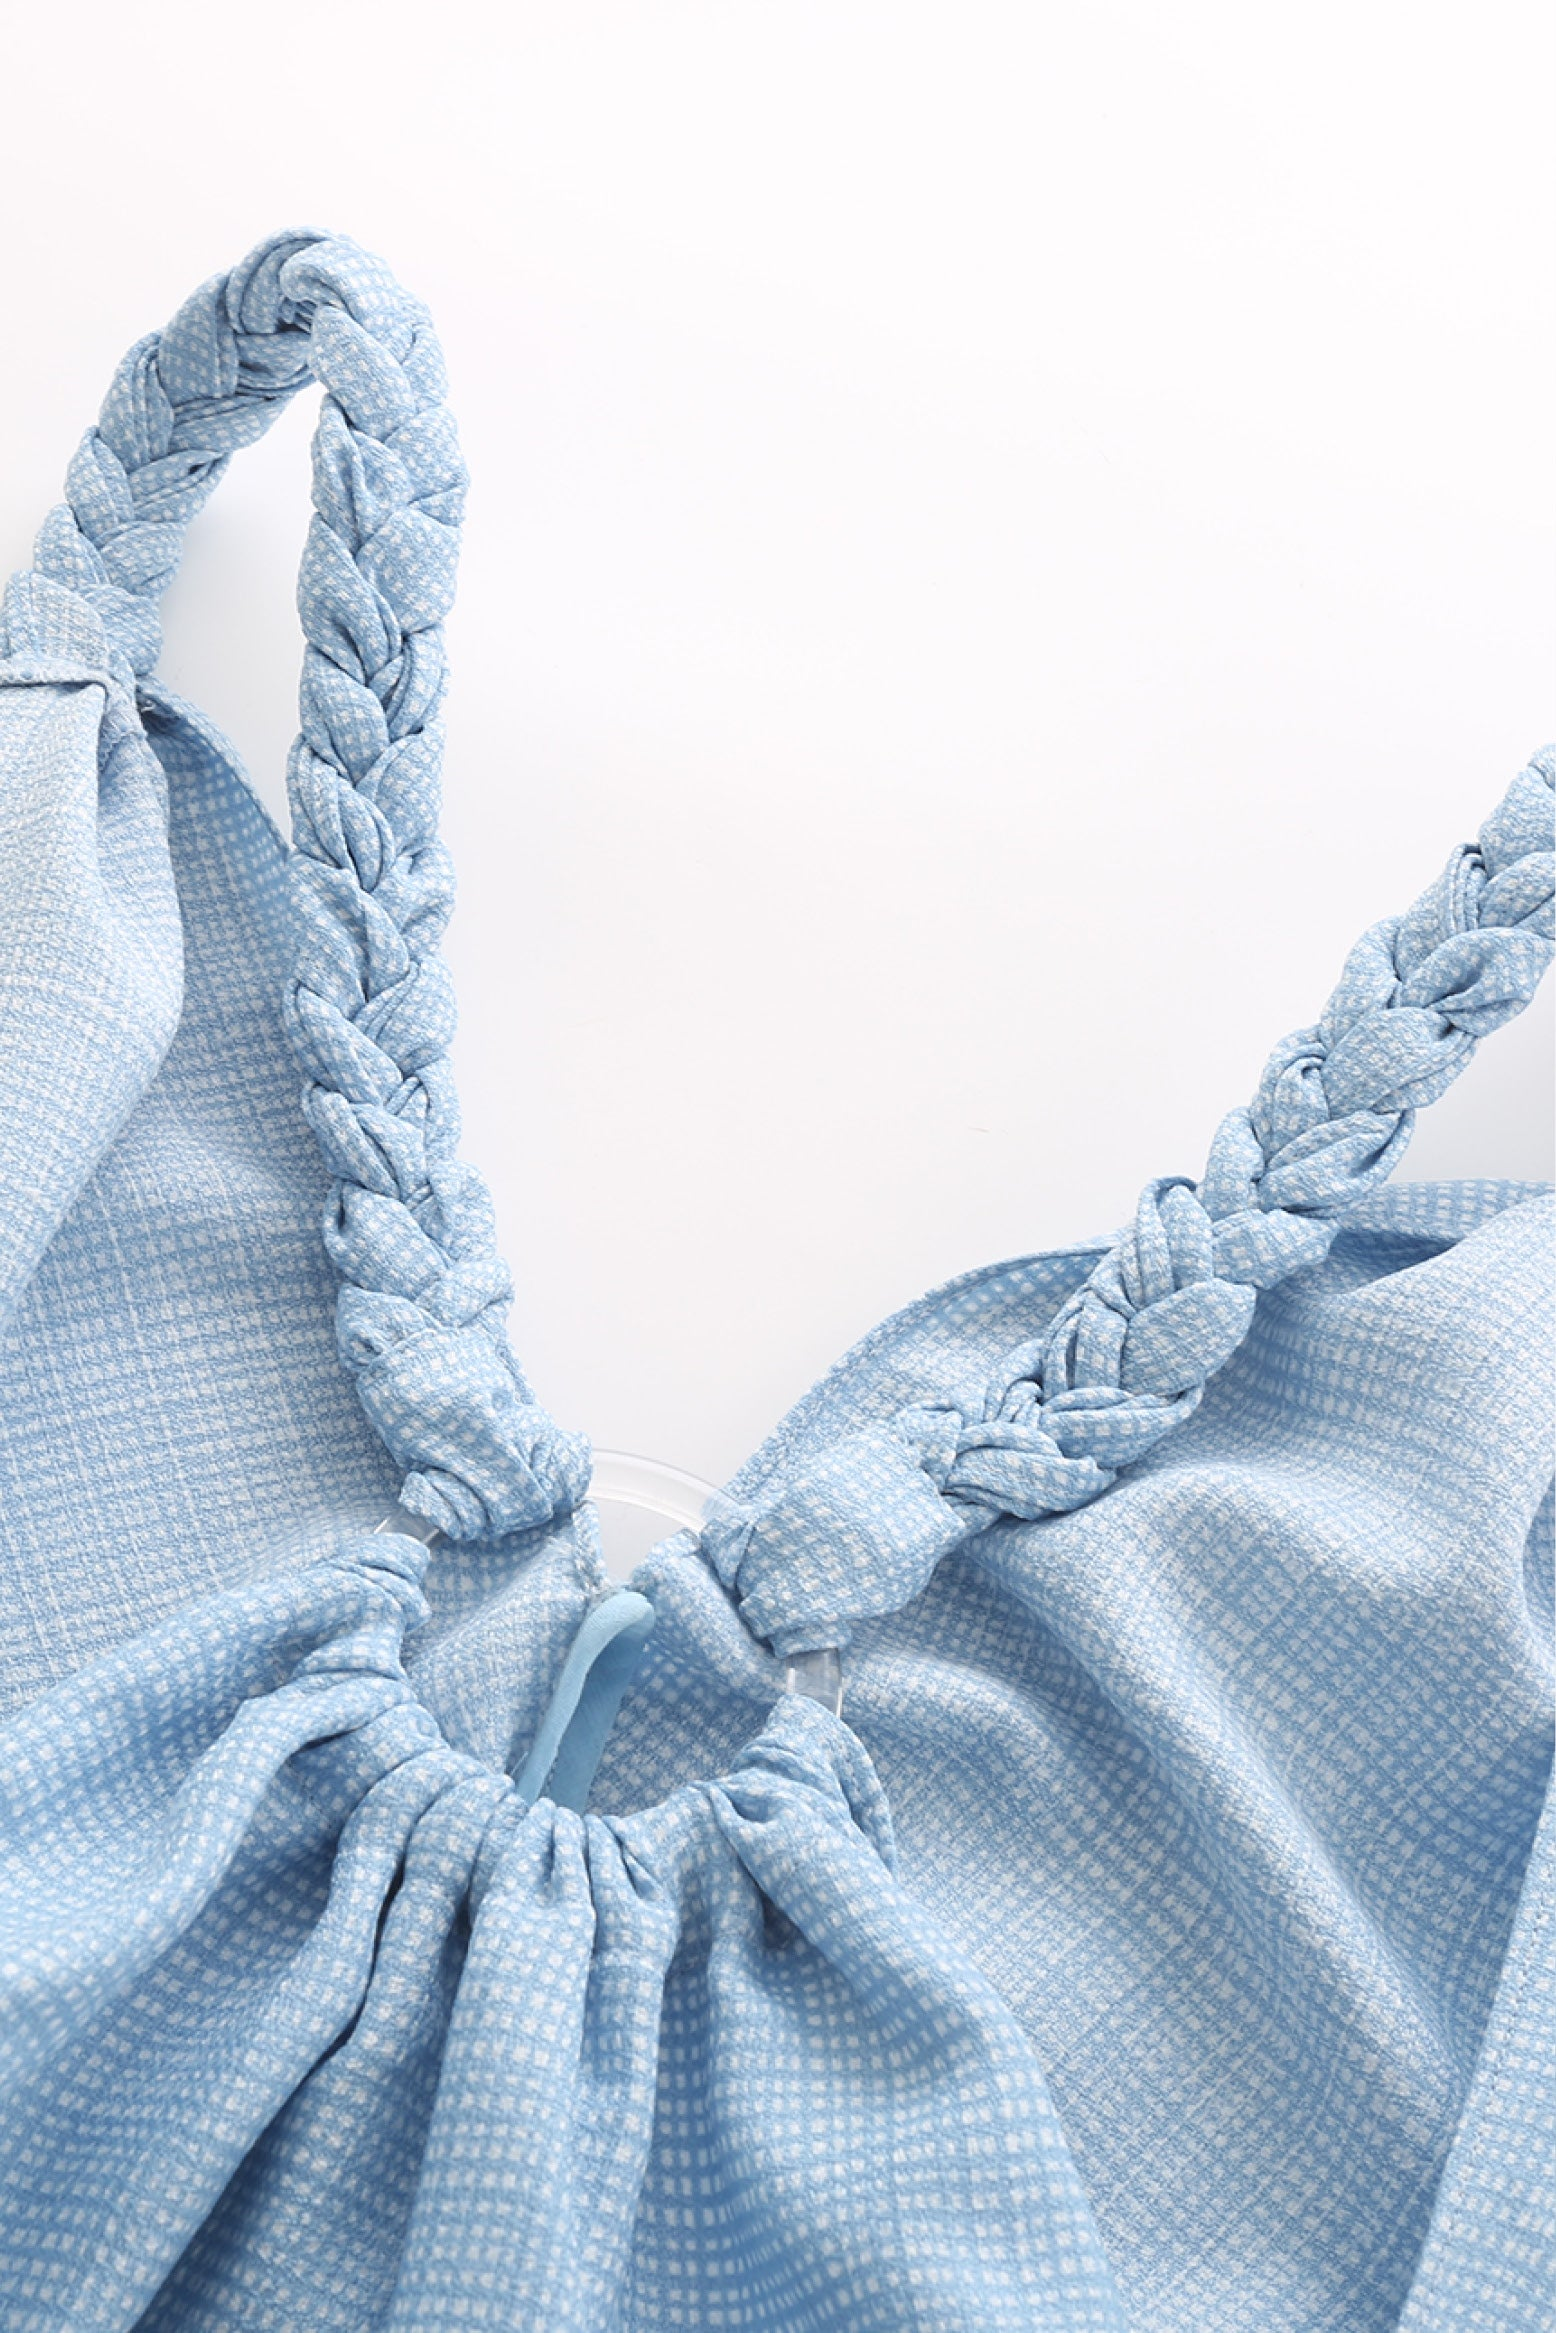 Bianca Braided Strap dress in Blue grid